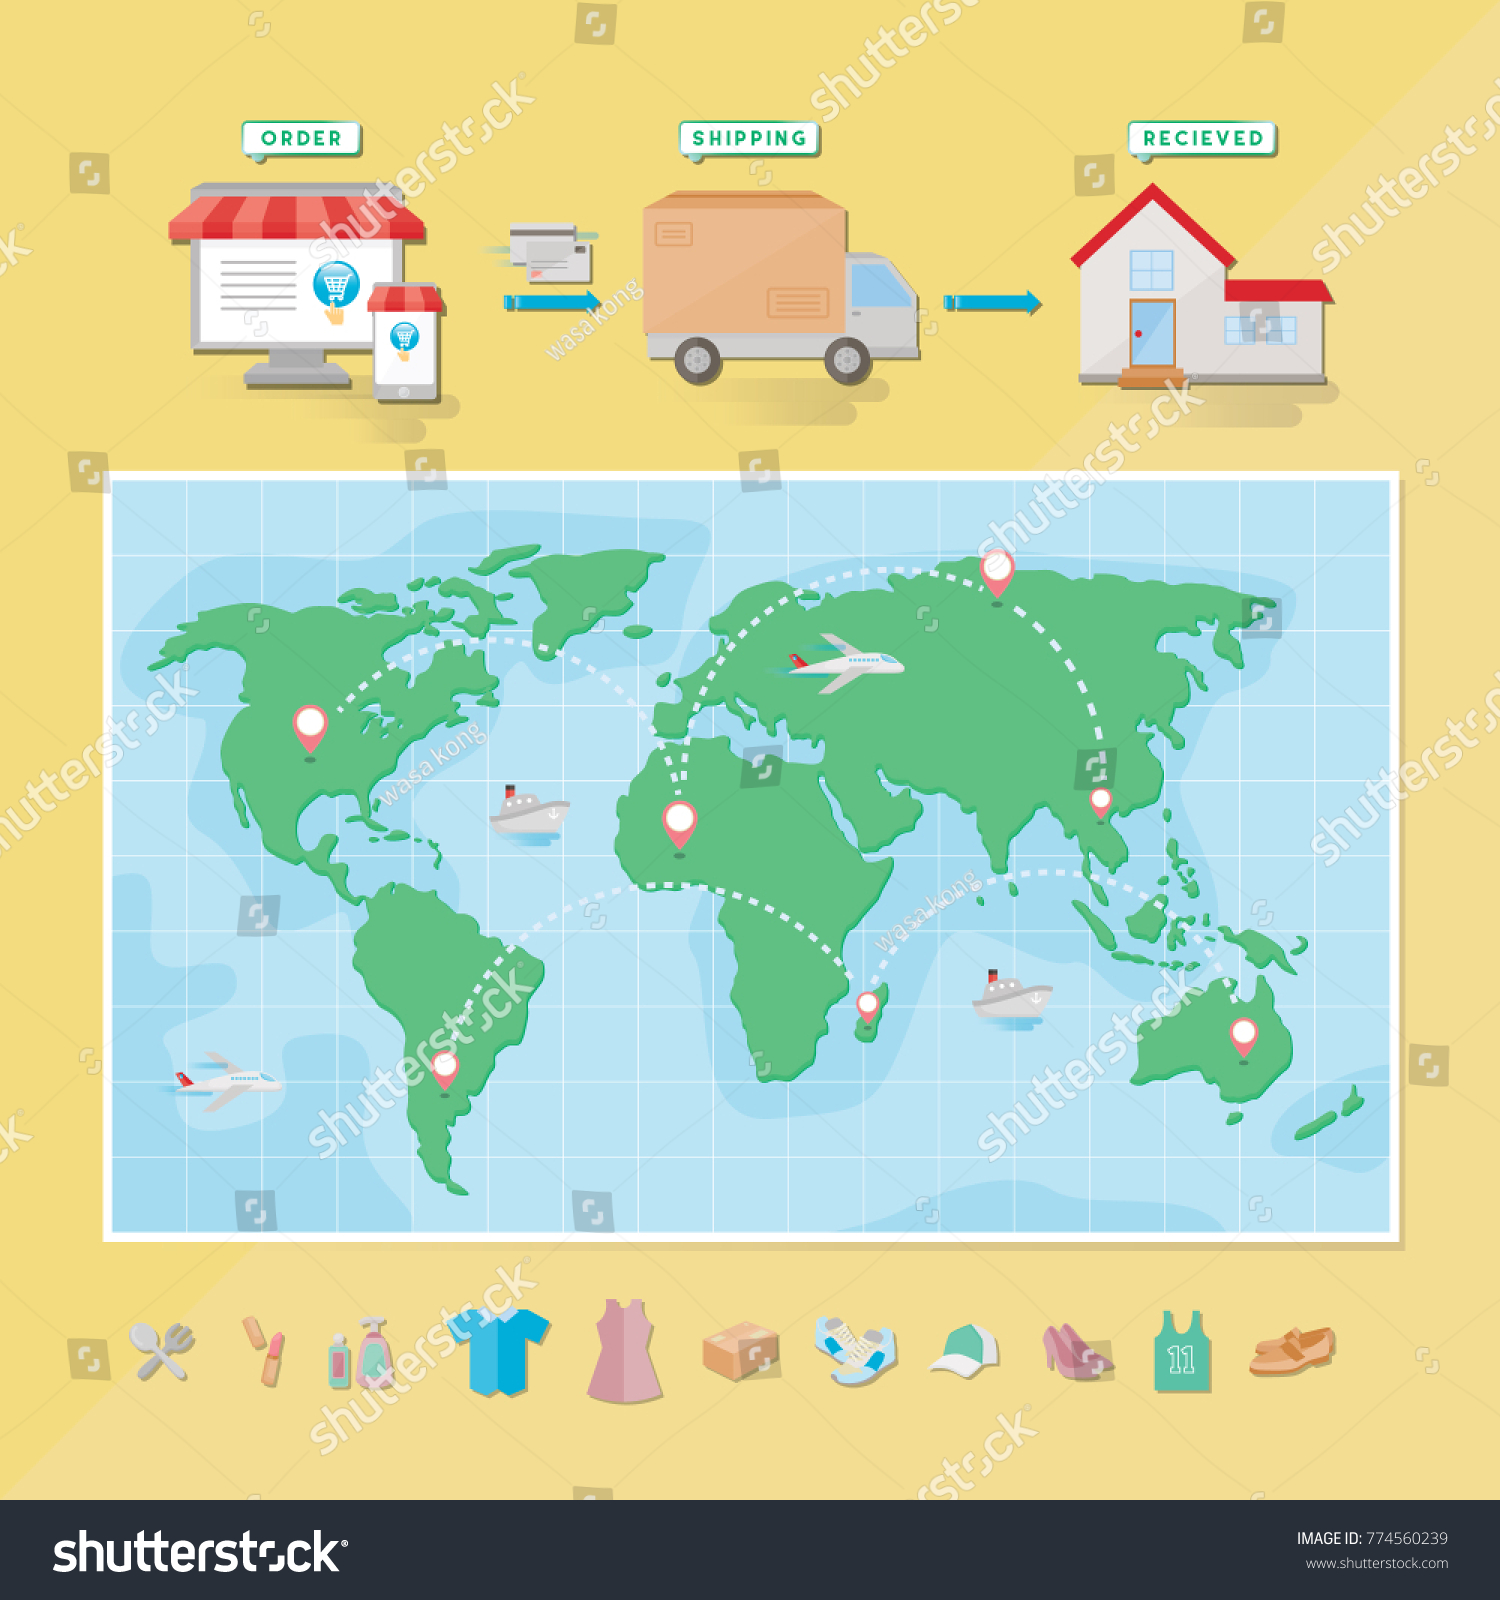 World map set icon online shopping vectores en stock 774560239 world map with set icon for online shopping icon set category gumiabroncs Gallery